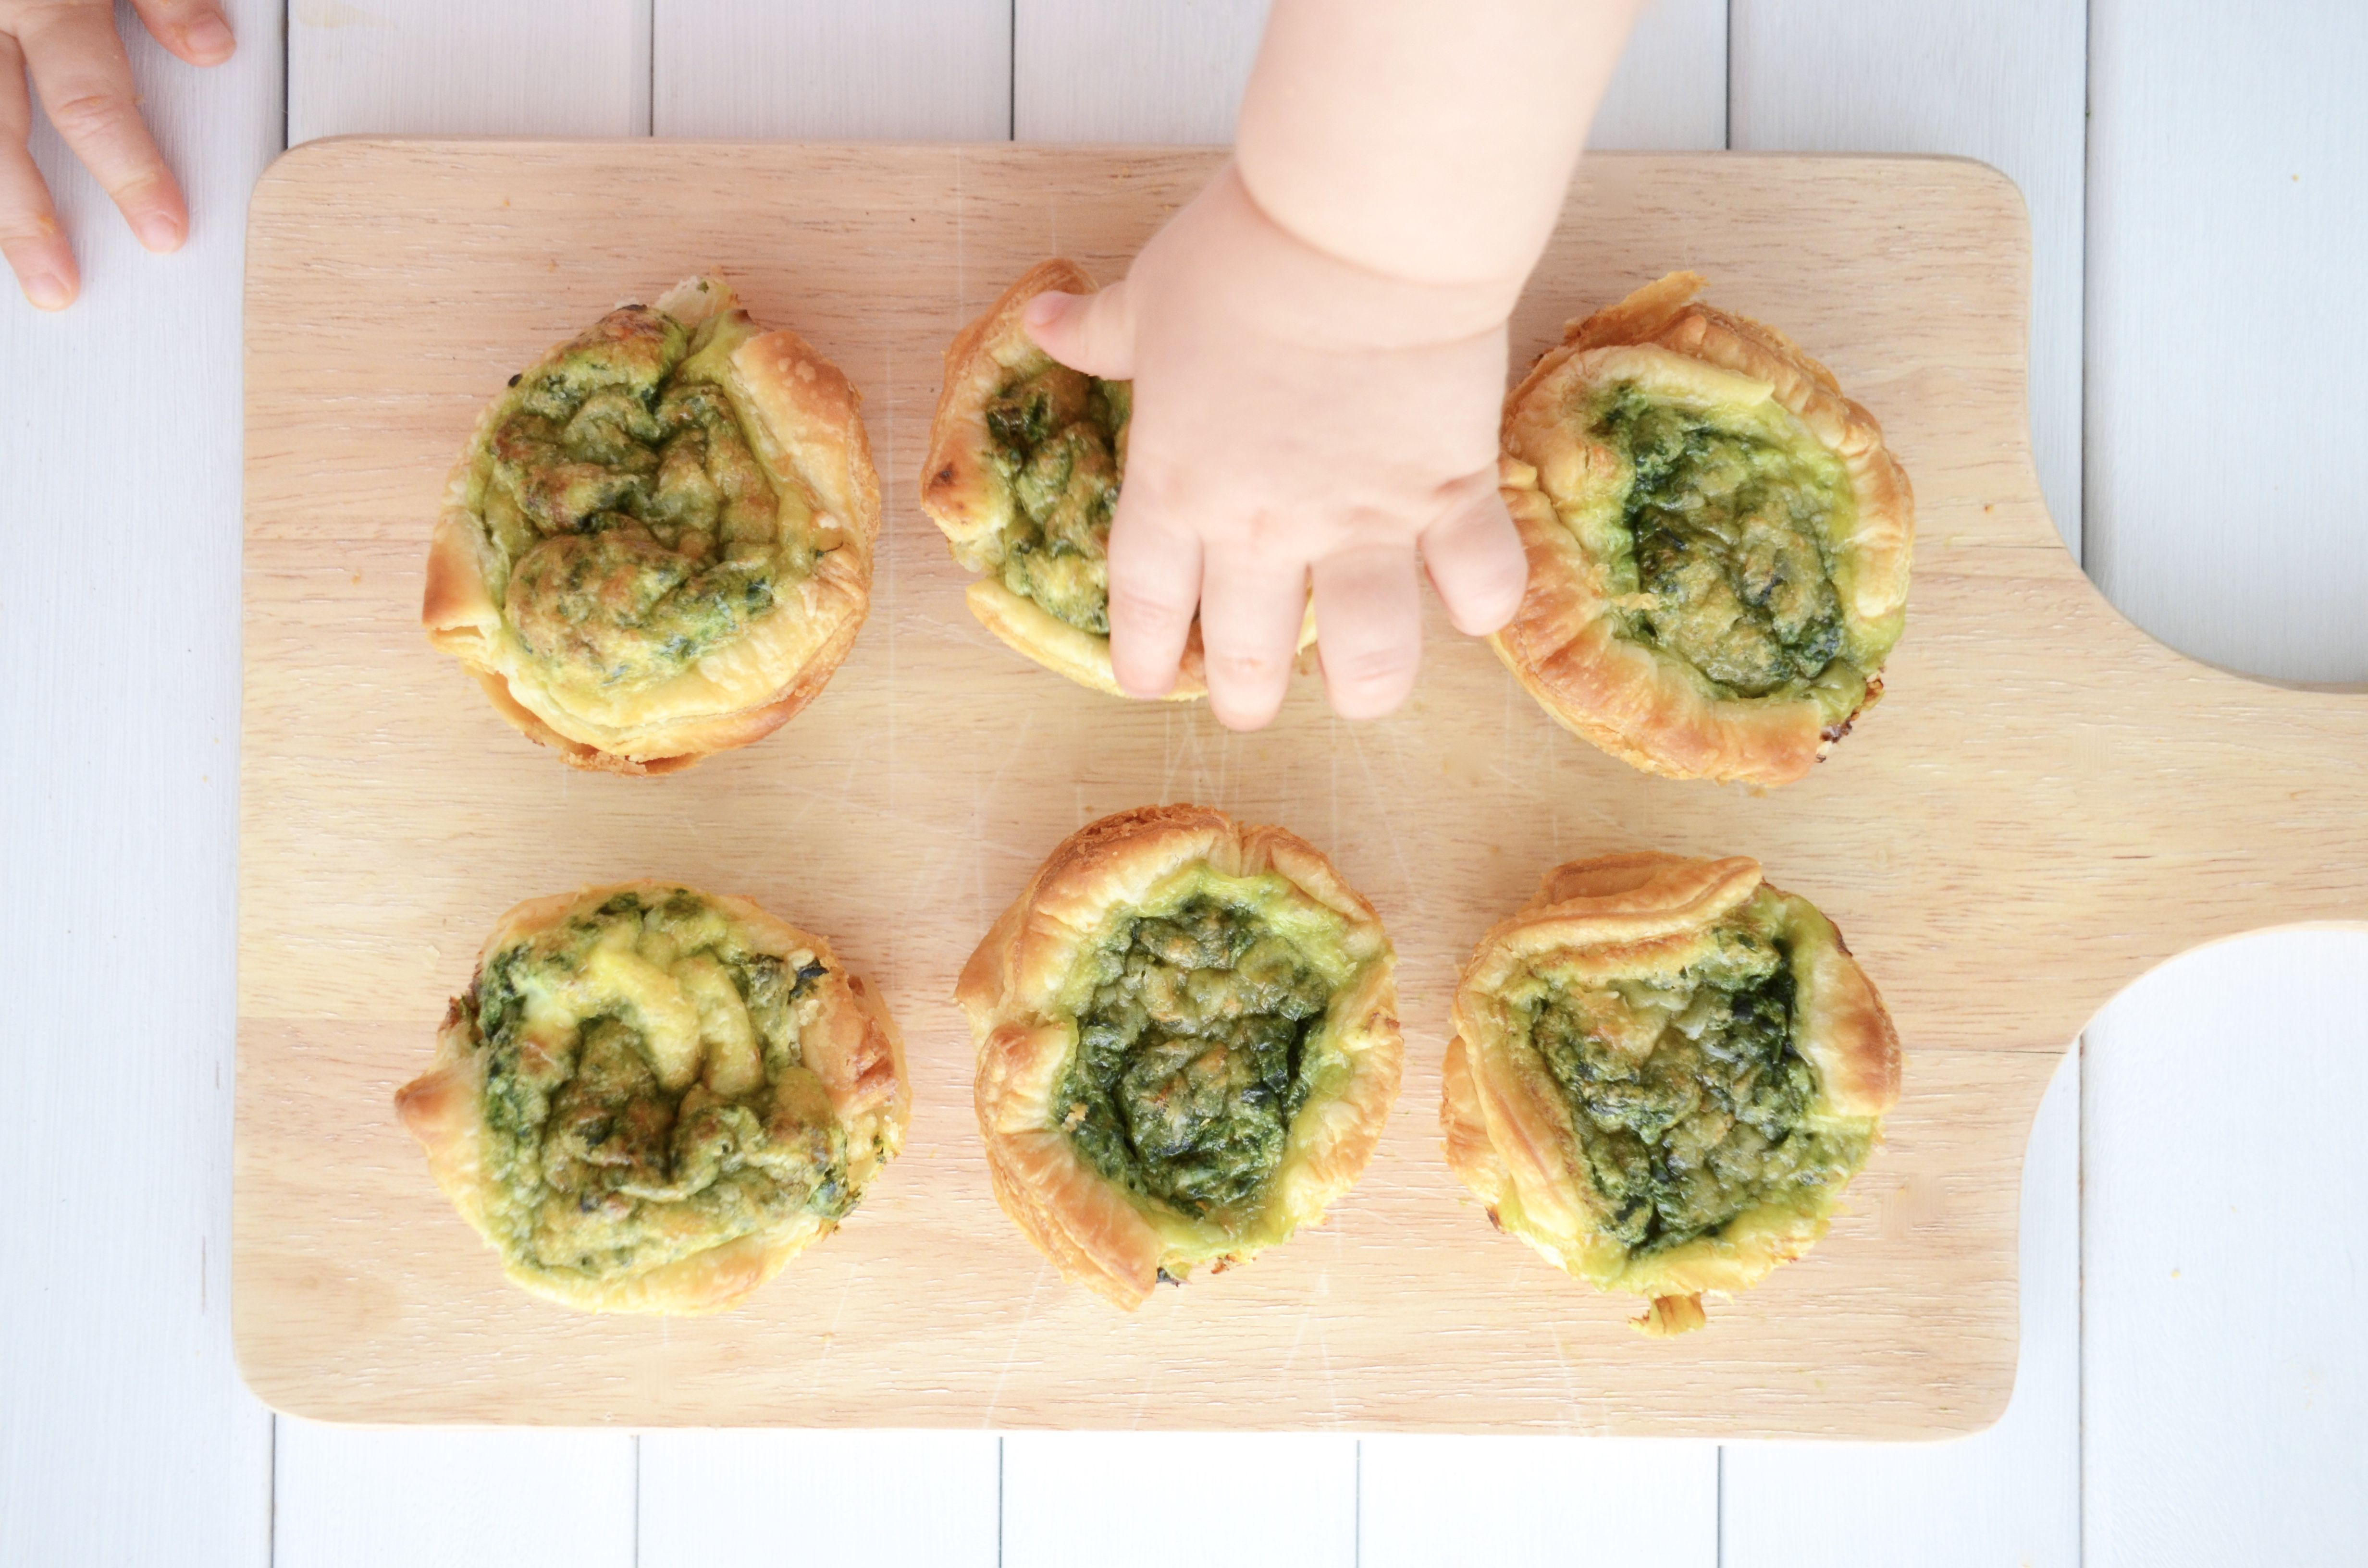 Spinach quiche cups baby food recipe baby food pinterest spinach quiche cups baby food recipe forumfinder Image collections